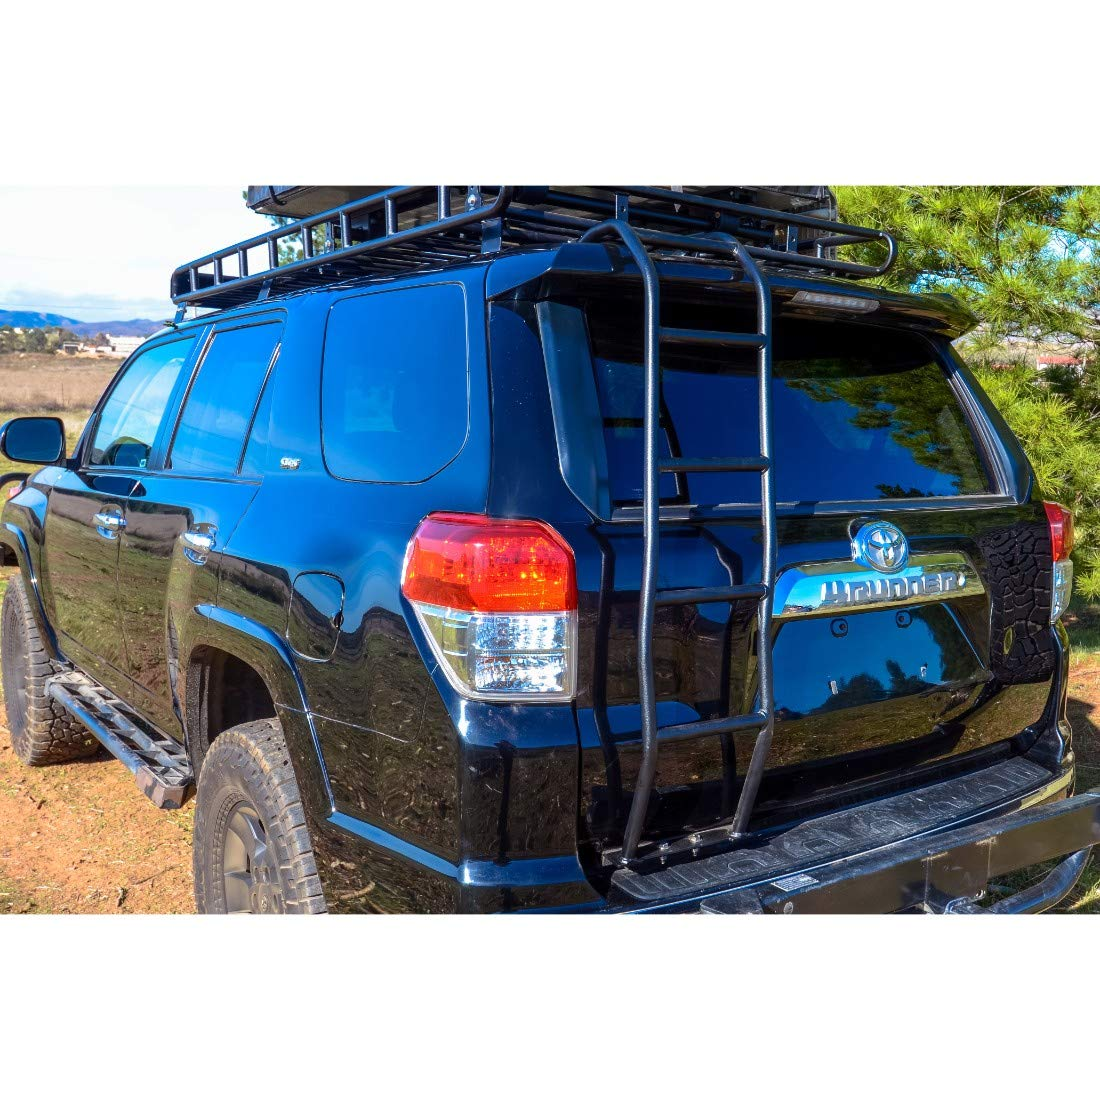 BajaRack Rear Ladder Toyota 2010-2018 4Runner Gen 5